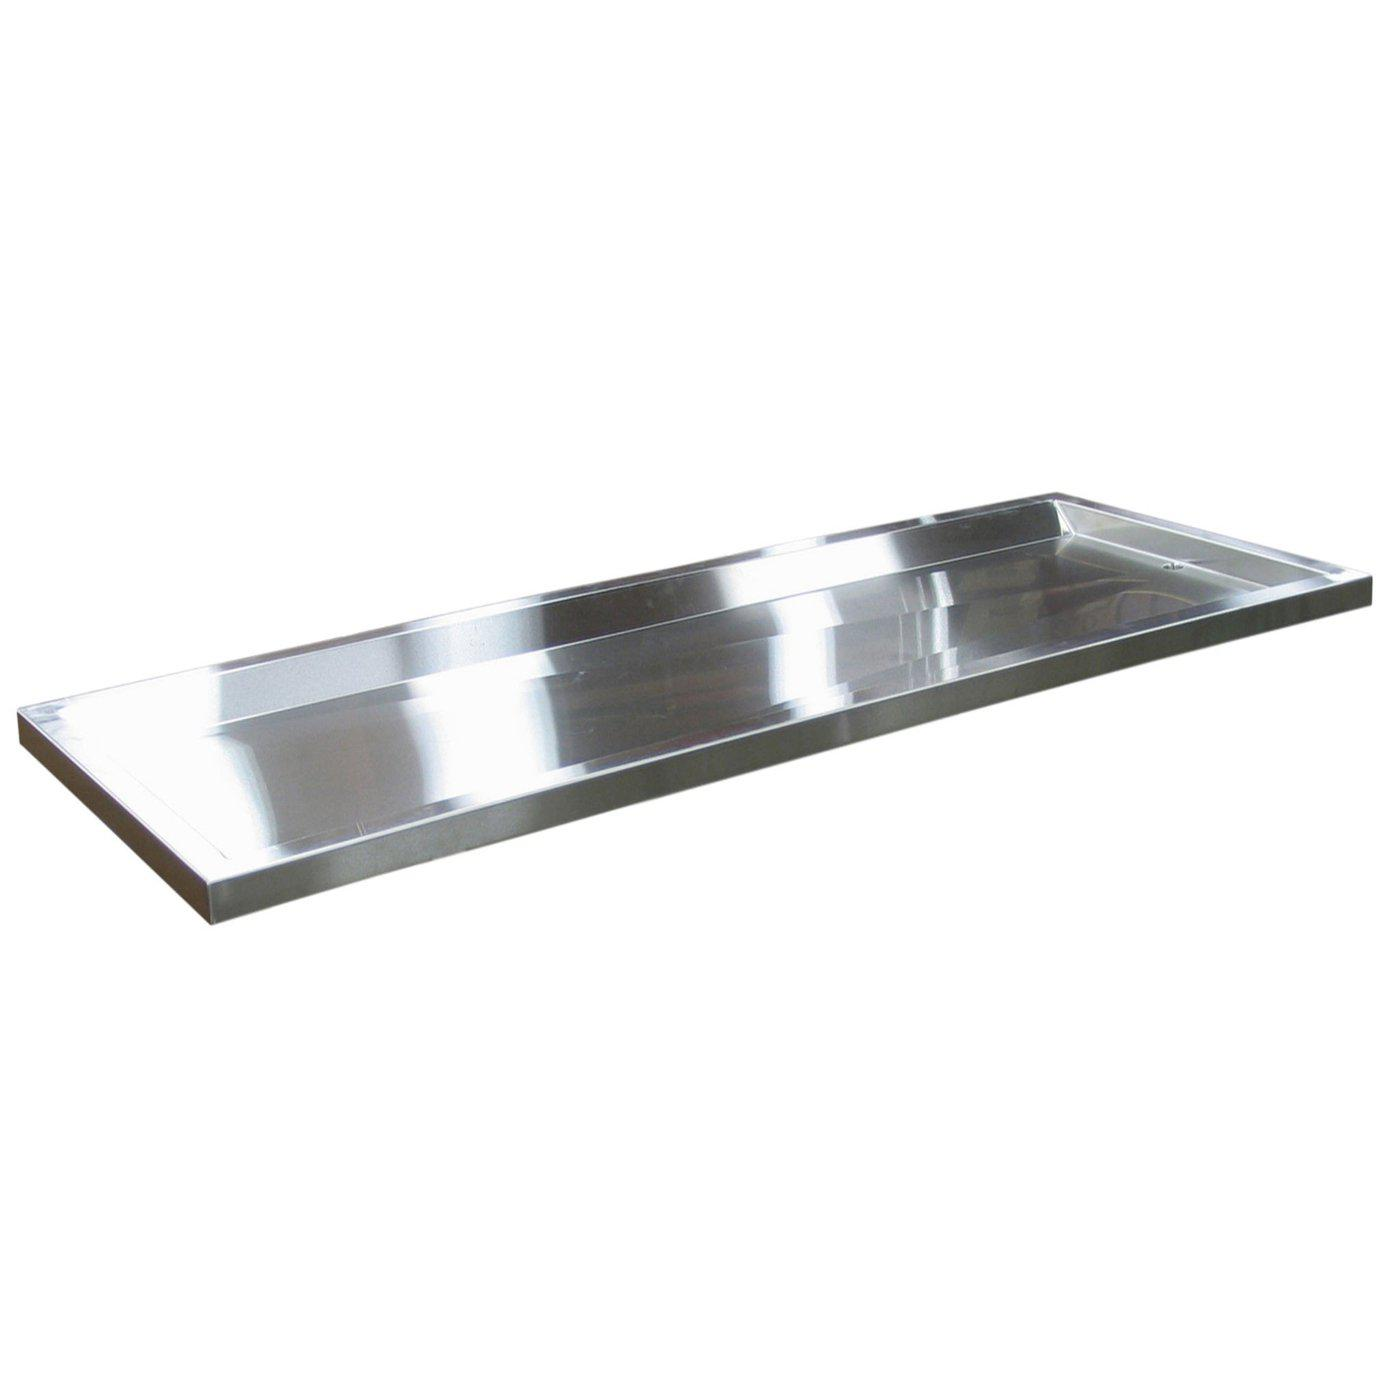 Stainless Steel Autopsy Tray-Cadaver Trays-Mortech Manufacturing Company Inc. Quality Stainless Steel Autopsy, Morgue, Funeral Home, Necropsy, Veterinary / Anatomy, Dissection Equipment and Accessories